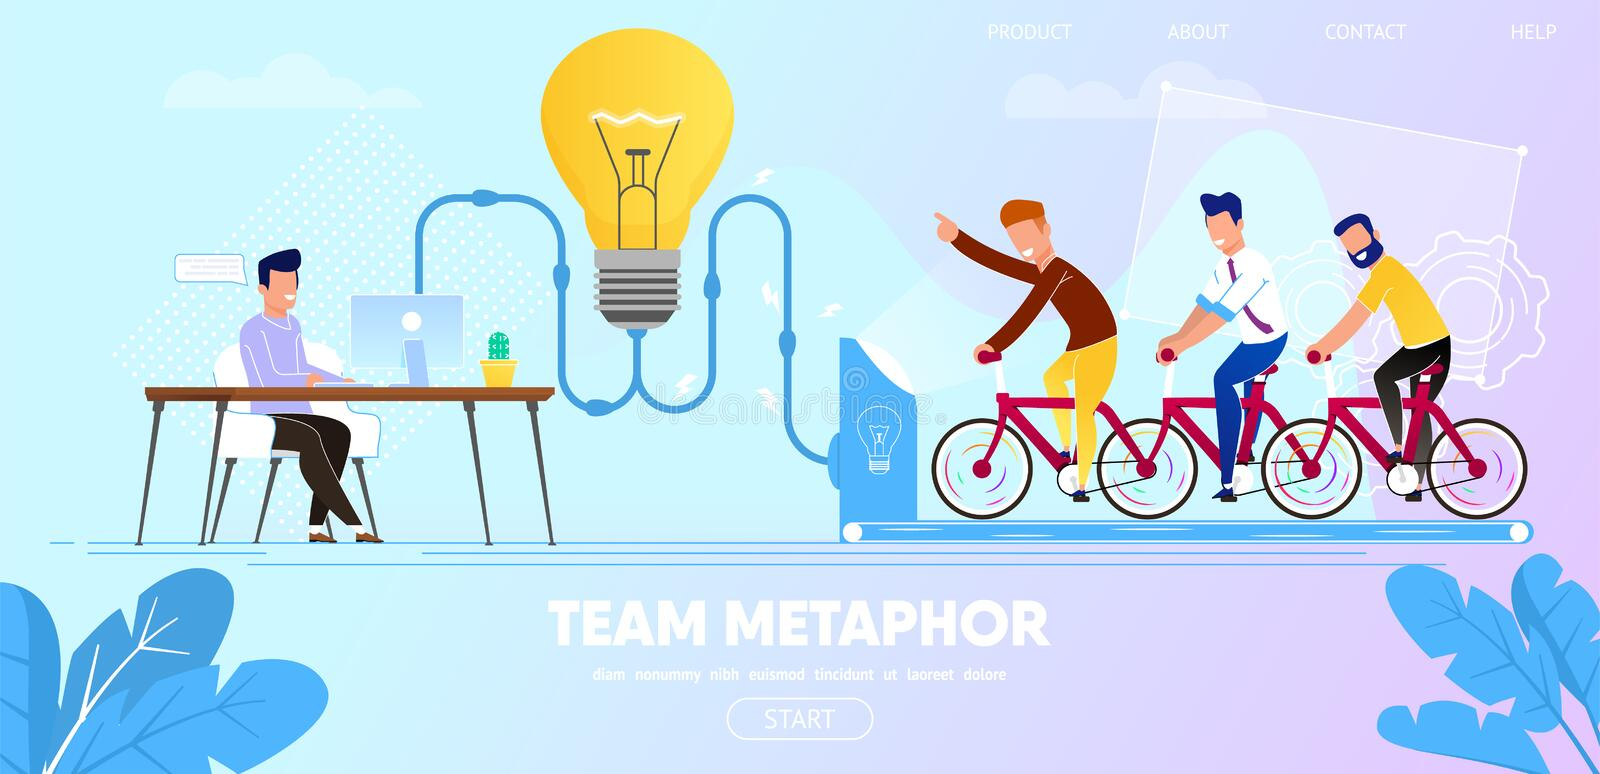 People on Bicycle Generating Power for Large Bulb. Team Metaphor. Business People Sitting on Bicycle Generating Electric Power for Large Bulb. Idea Generation royalty free illustration